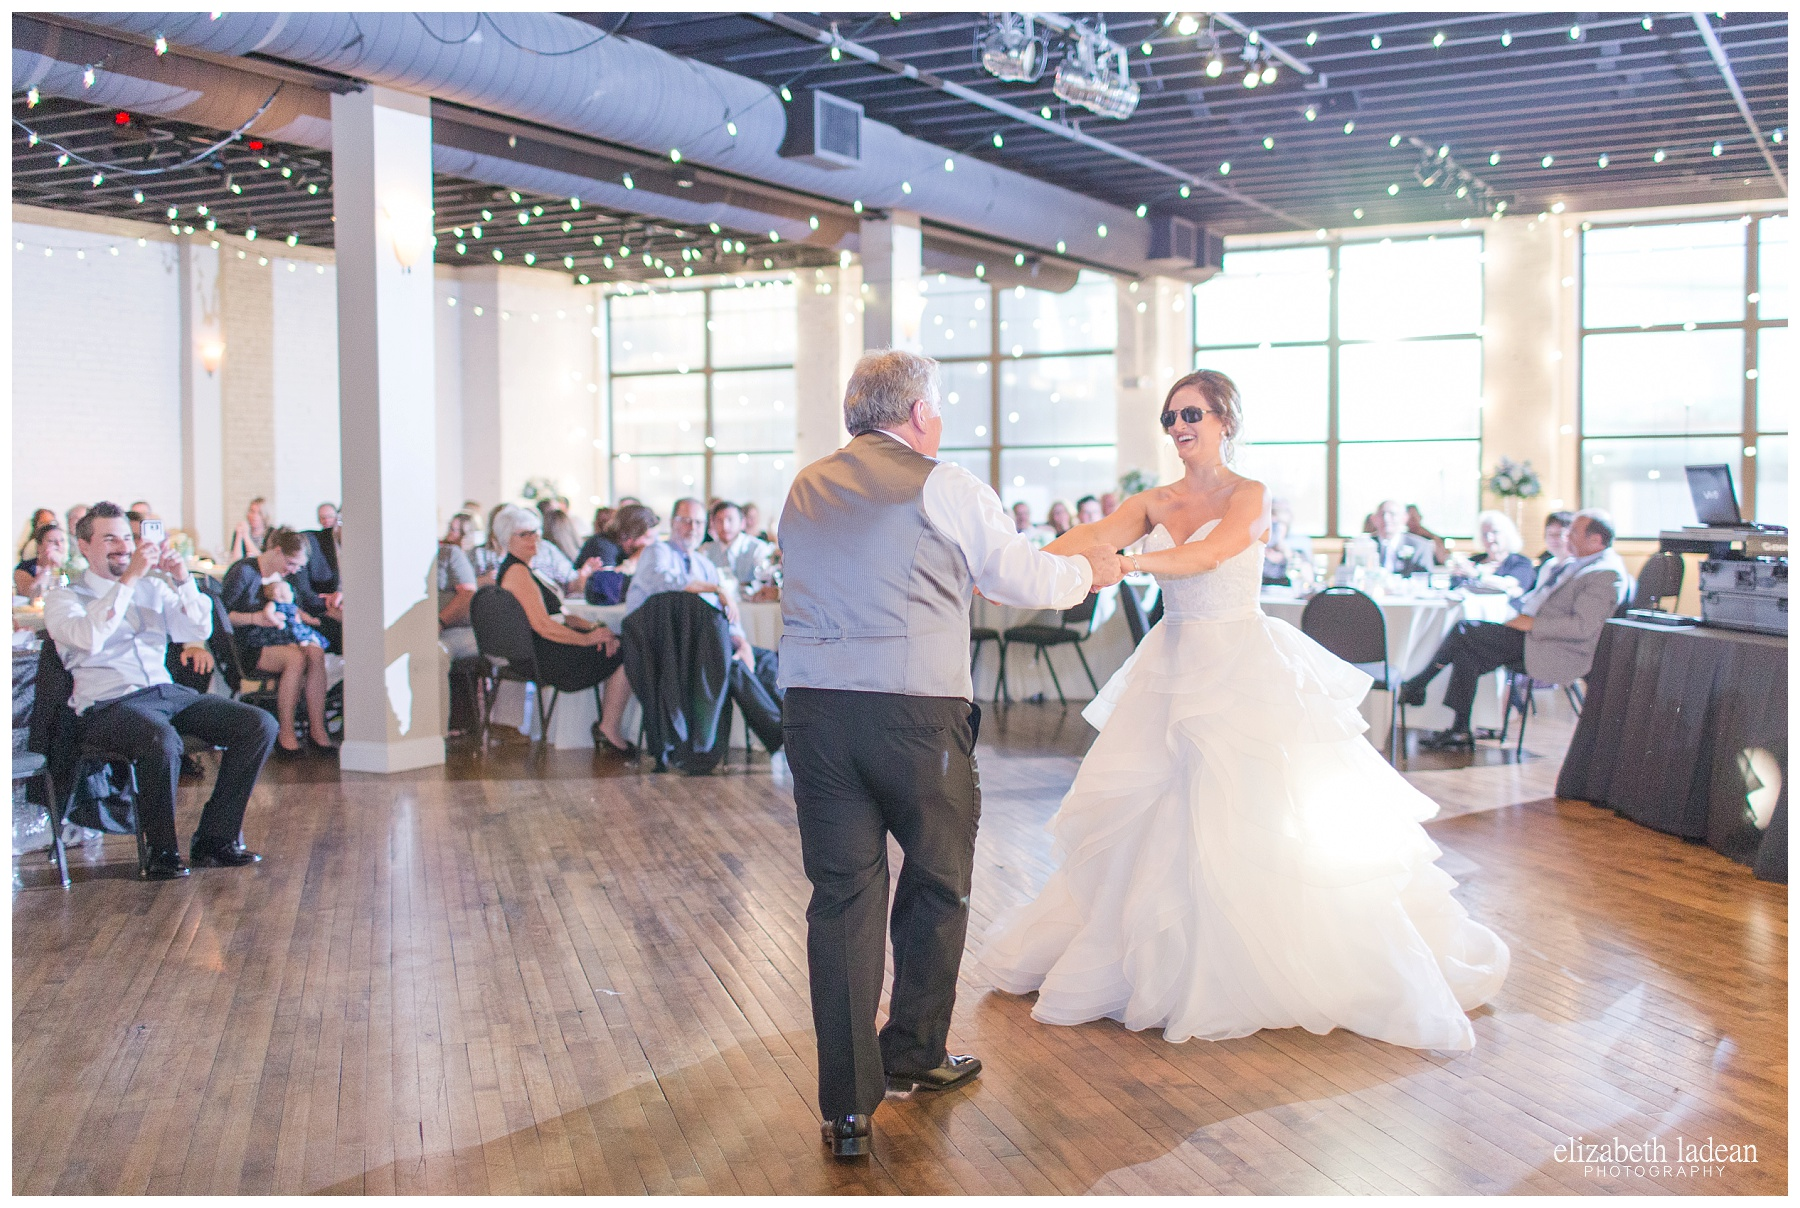 Terrace-on-Grand-Kansas-City-Wedding-Photography-C+J-0506-Elizabeth-Ladean-Photography-photo_0652.jpg